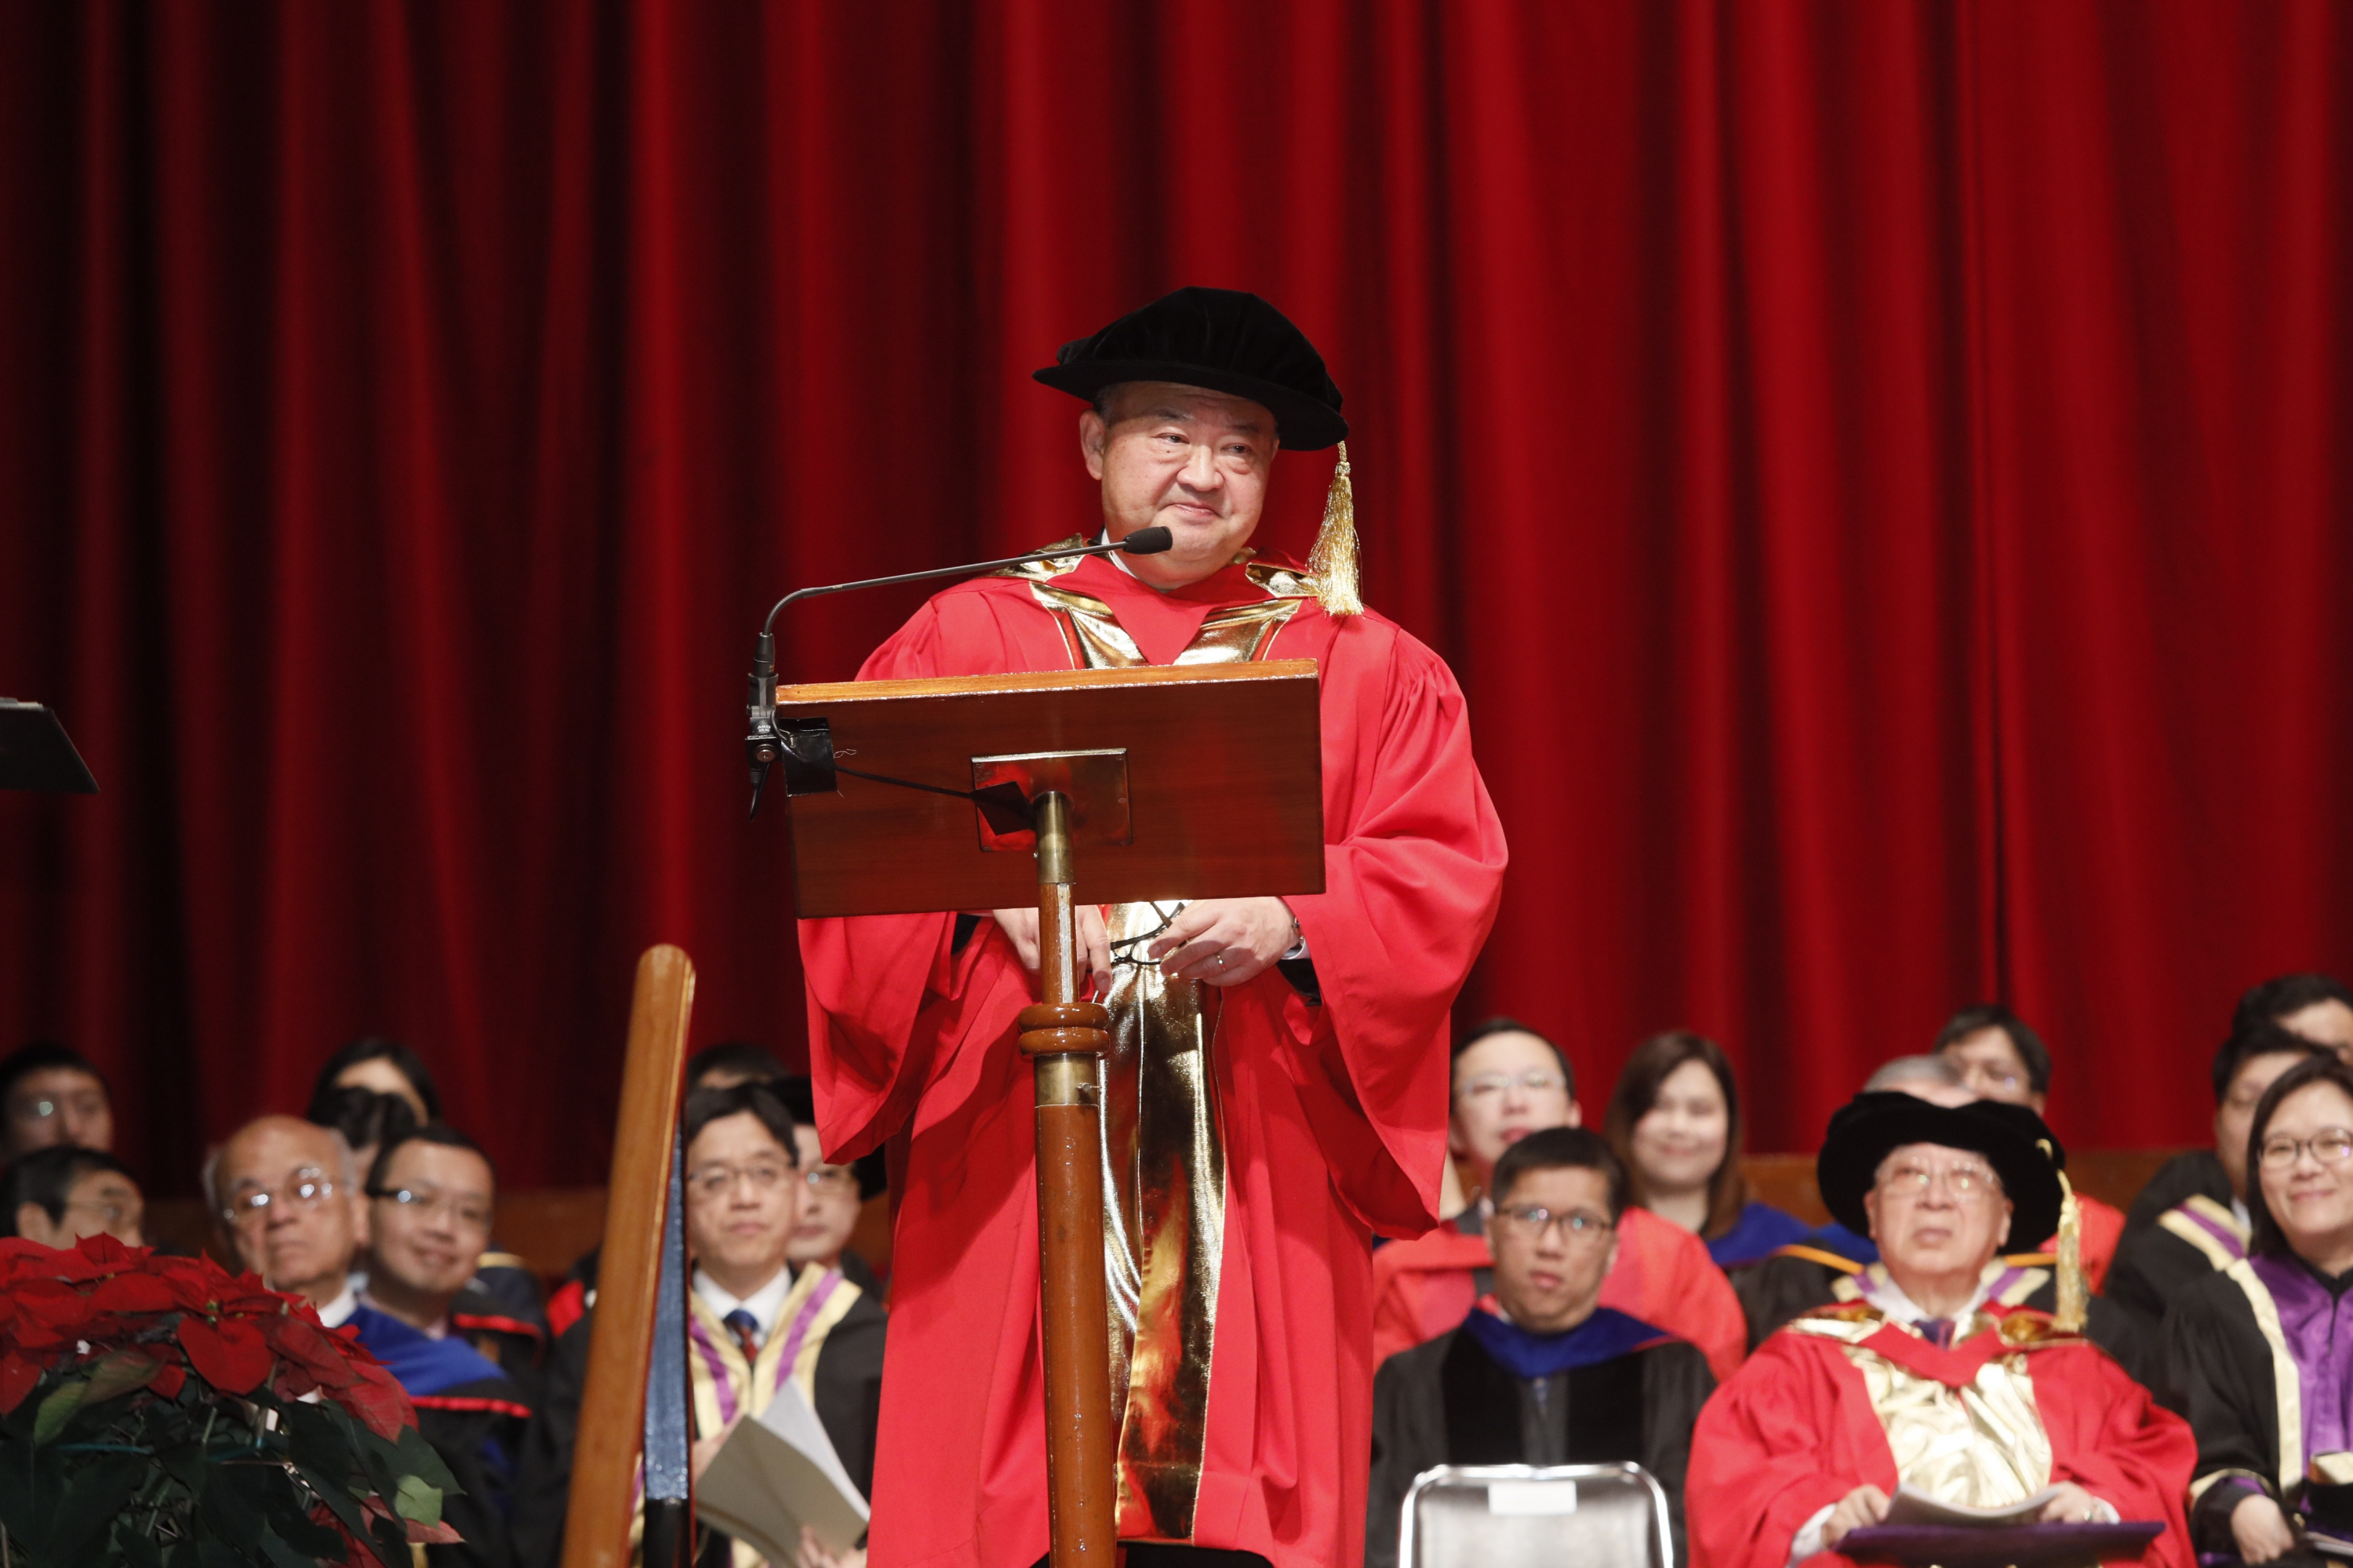 The Honourable Chief Justice Ma Tao-li, Geoffrey delivers a speech.